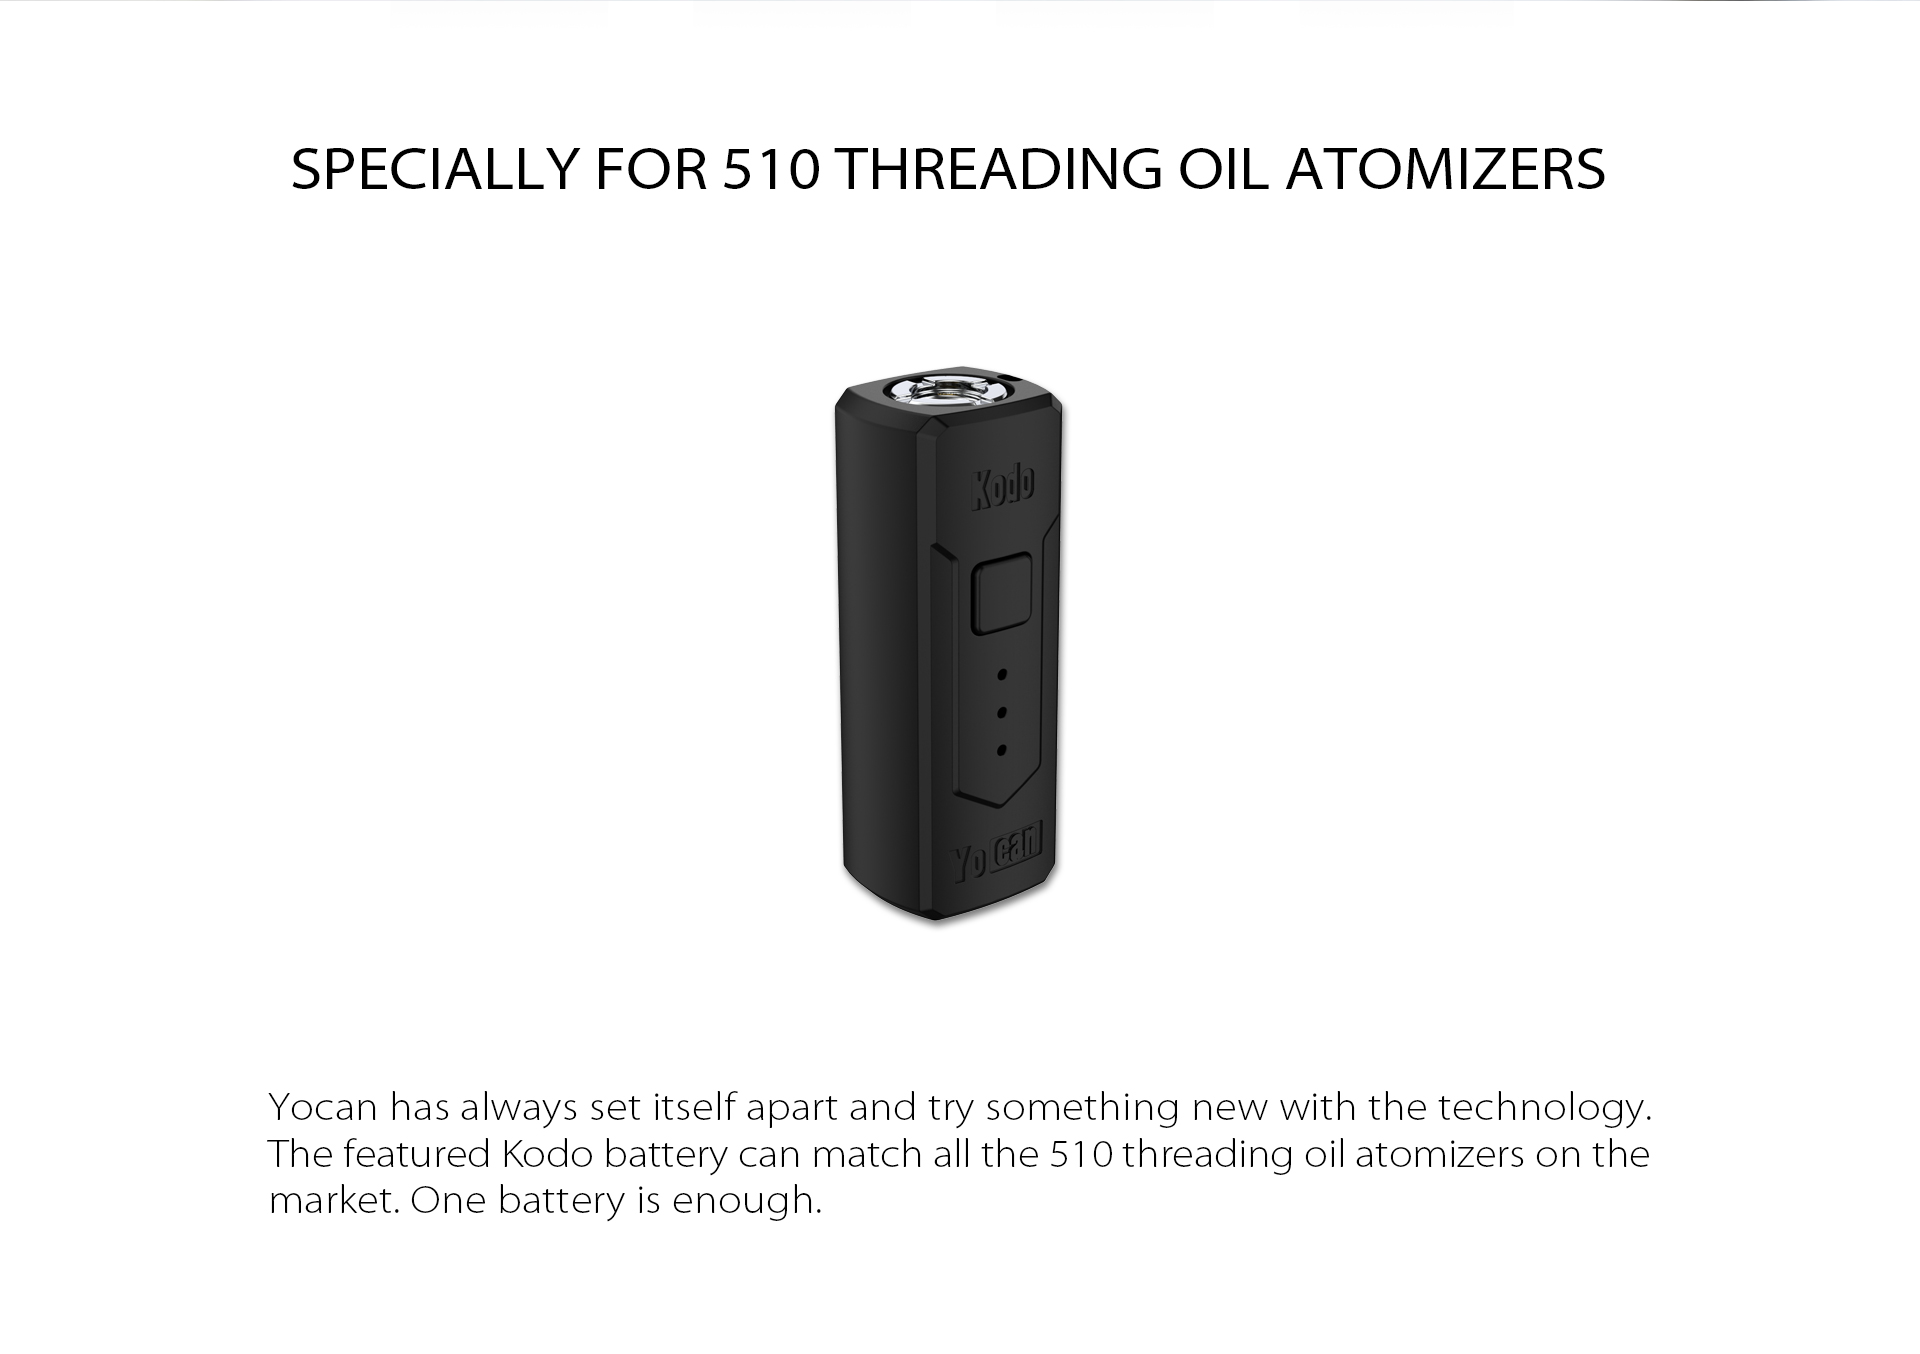 The Yocan Kodo Box Mod Battery specially for 510 threading oil atmizers.